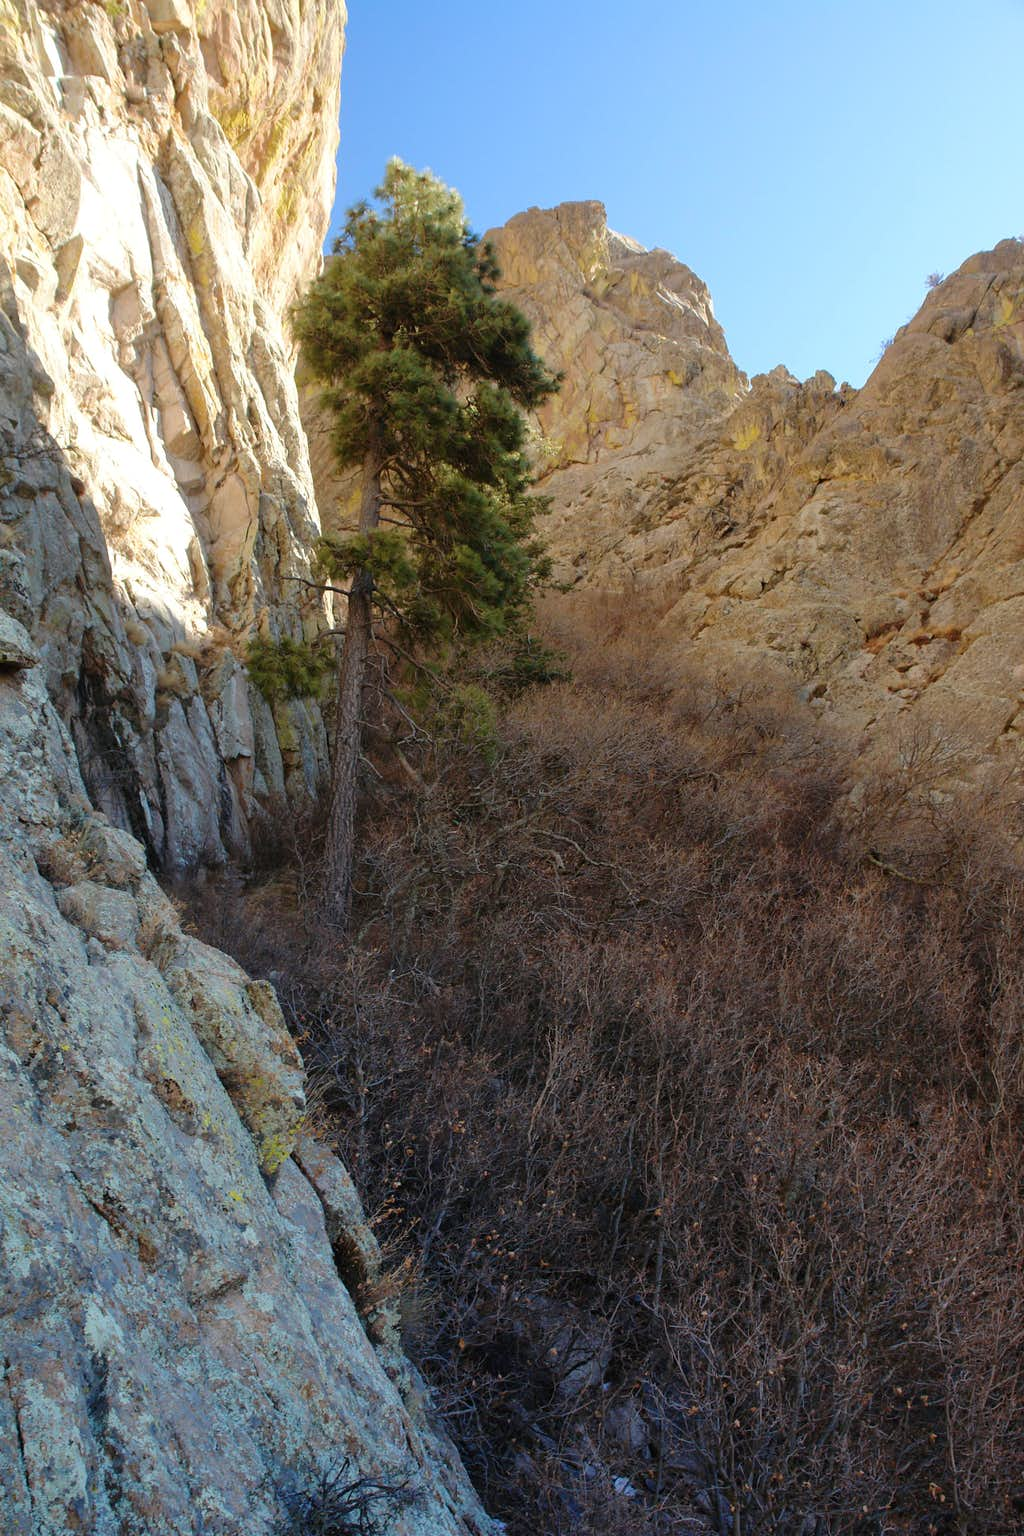 At the mouth of the Dark Canyon